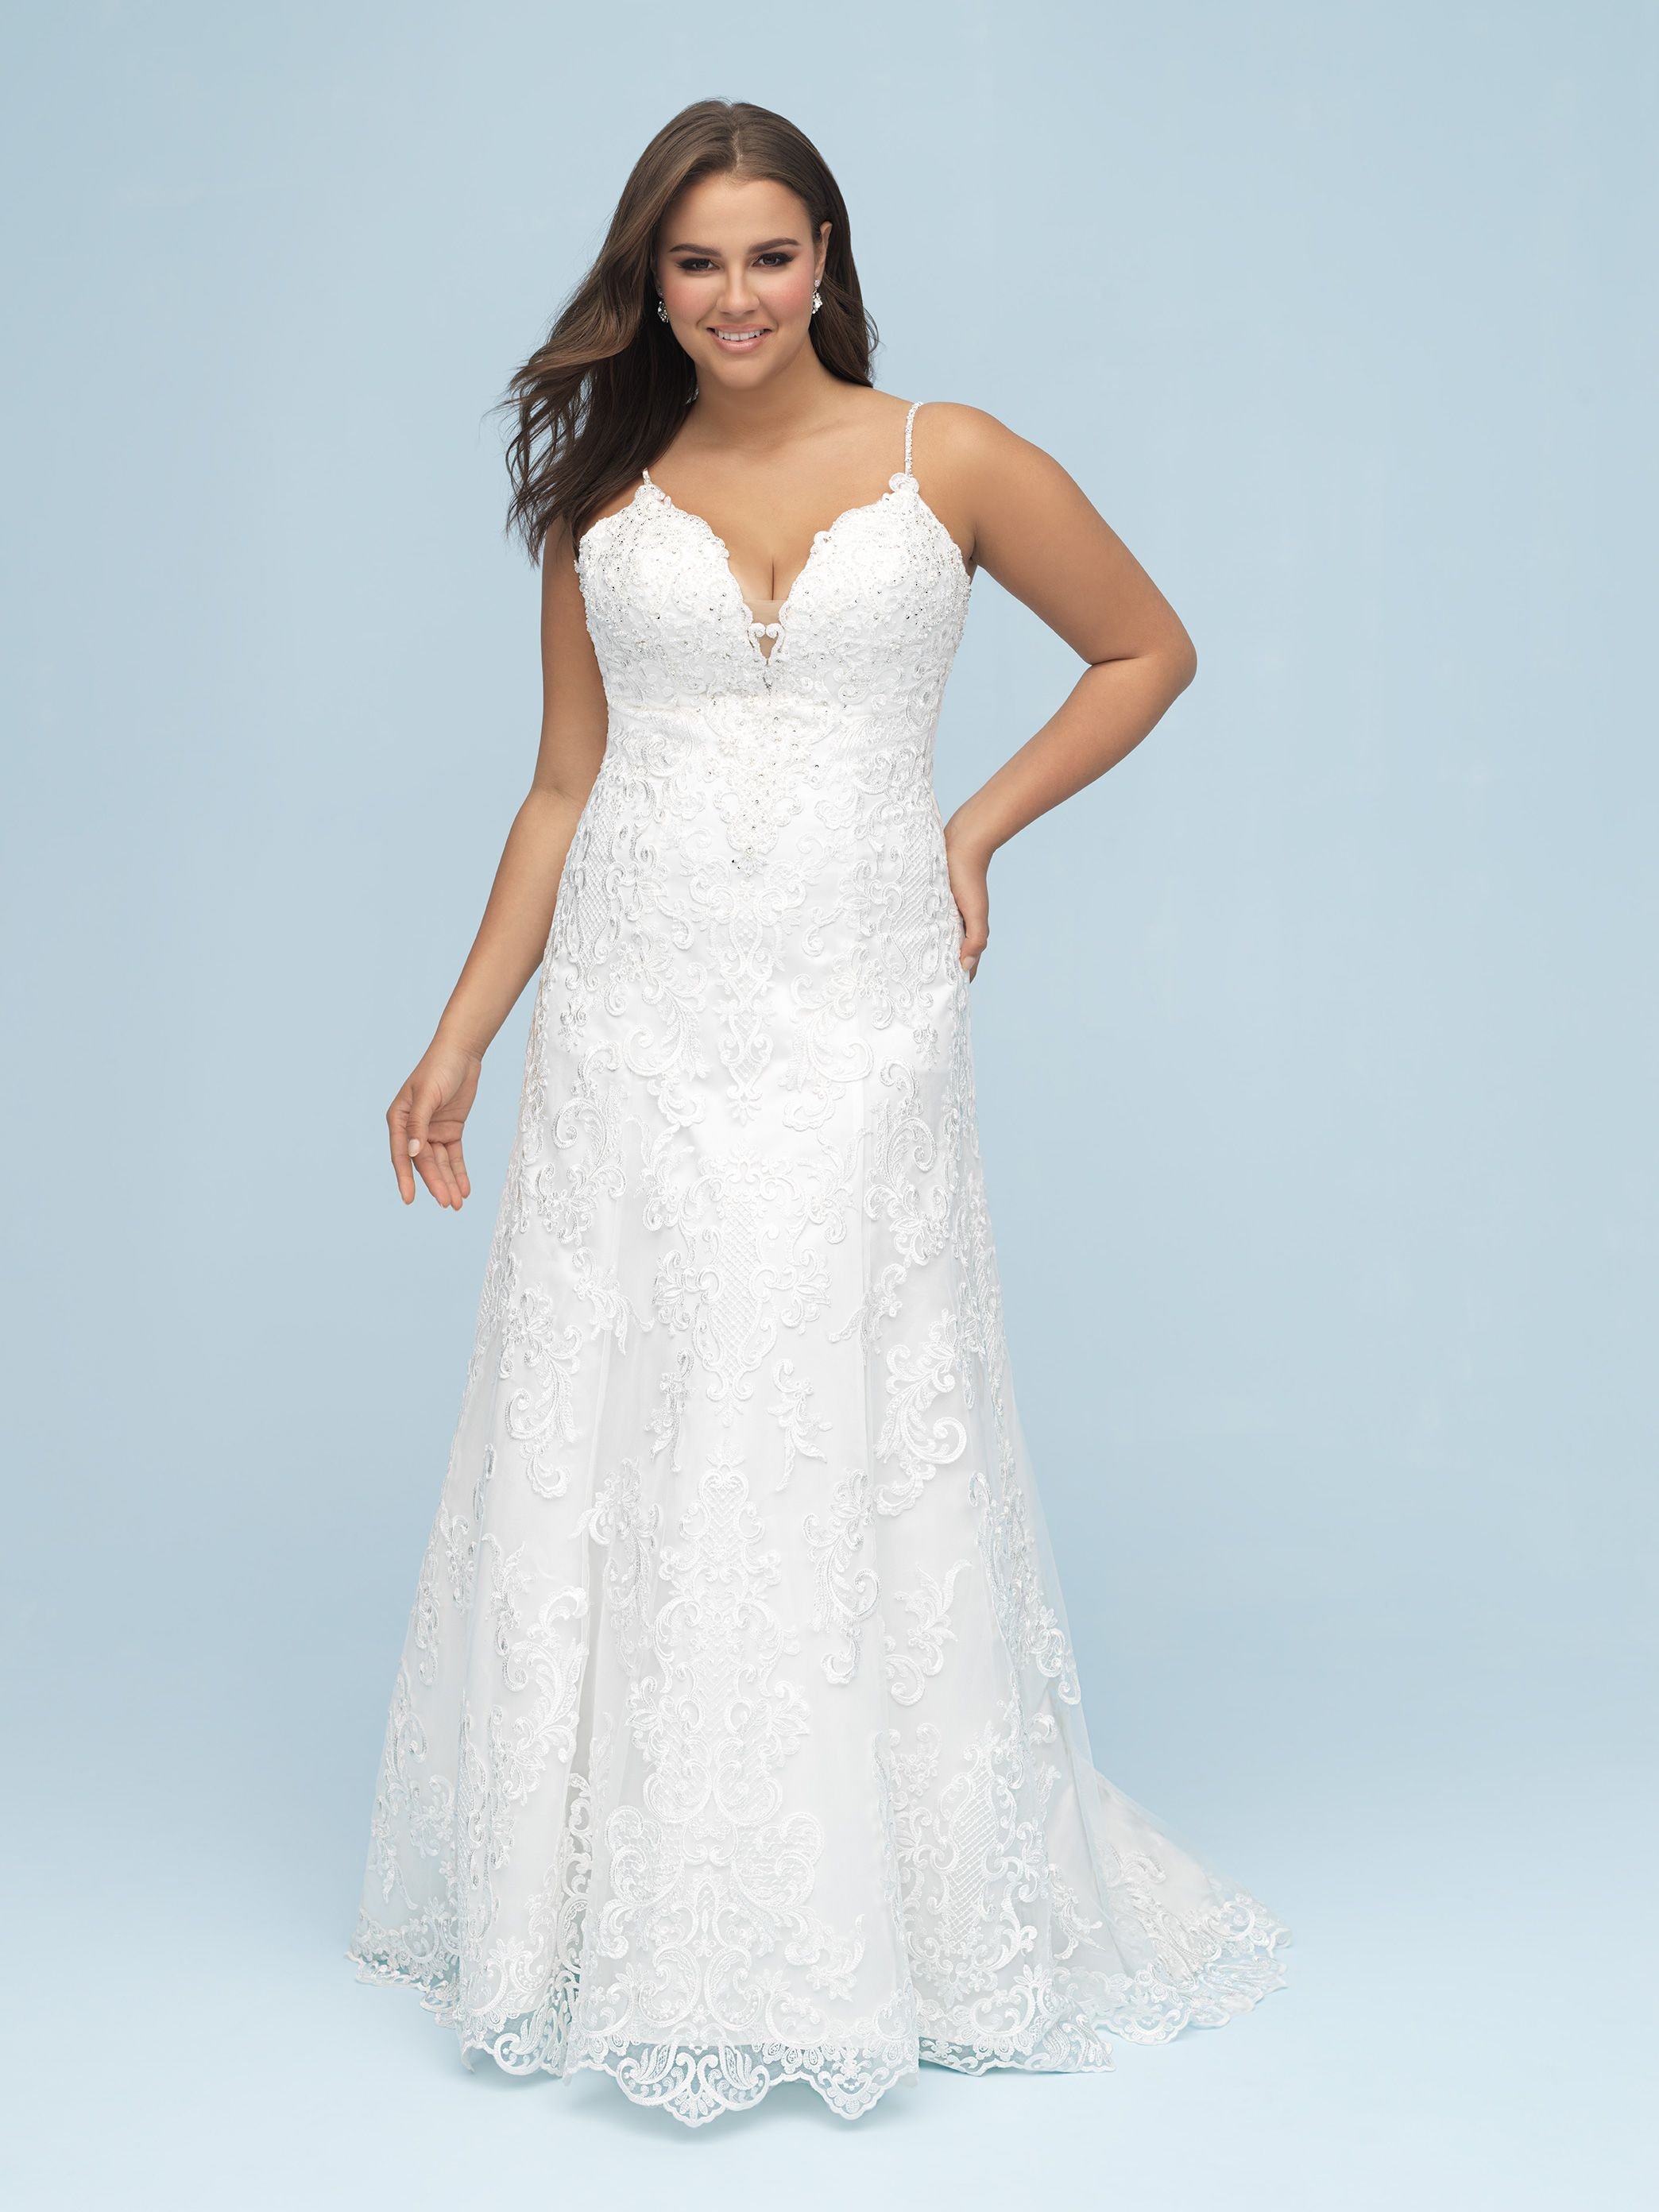 Plus Size Wedding Dress Sample Size 18 Inventory 2664 Dress Available At Bride To Be Co Allure Bridal Allure Bridal Gowns Lace Affordable Wedding Dresses